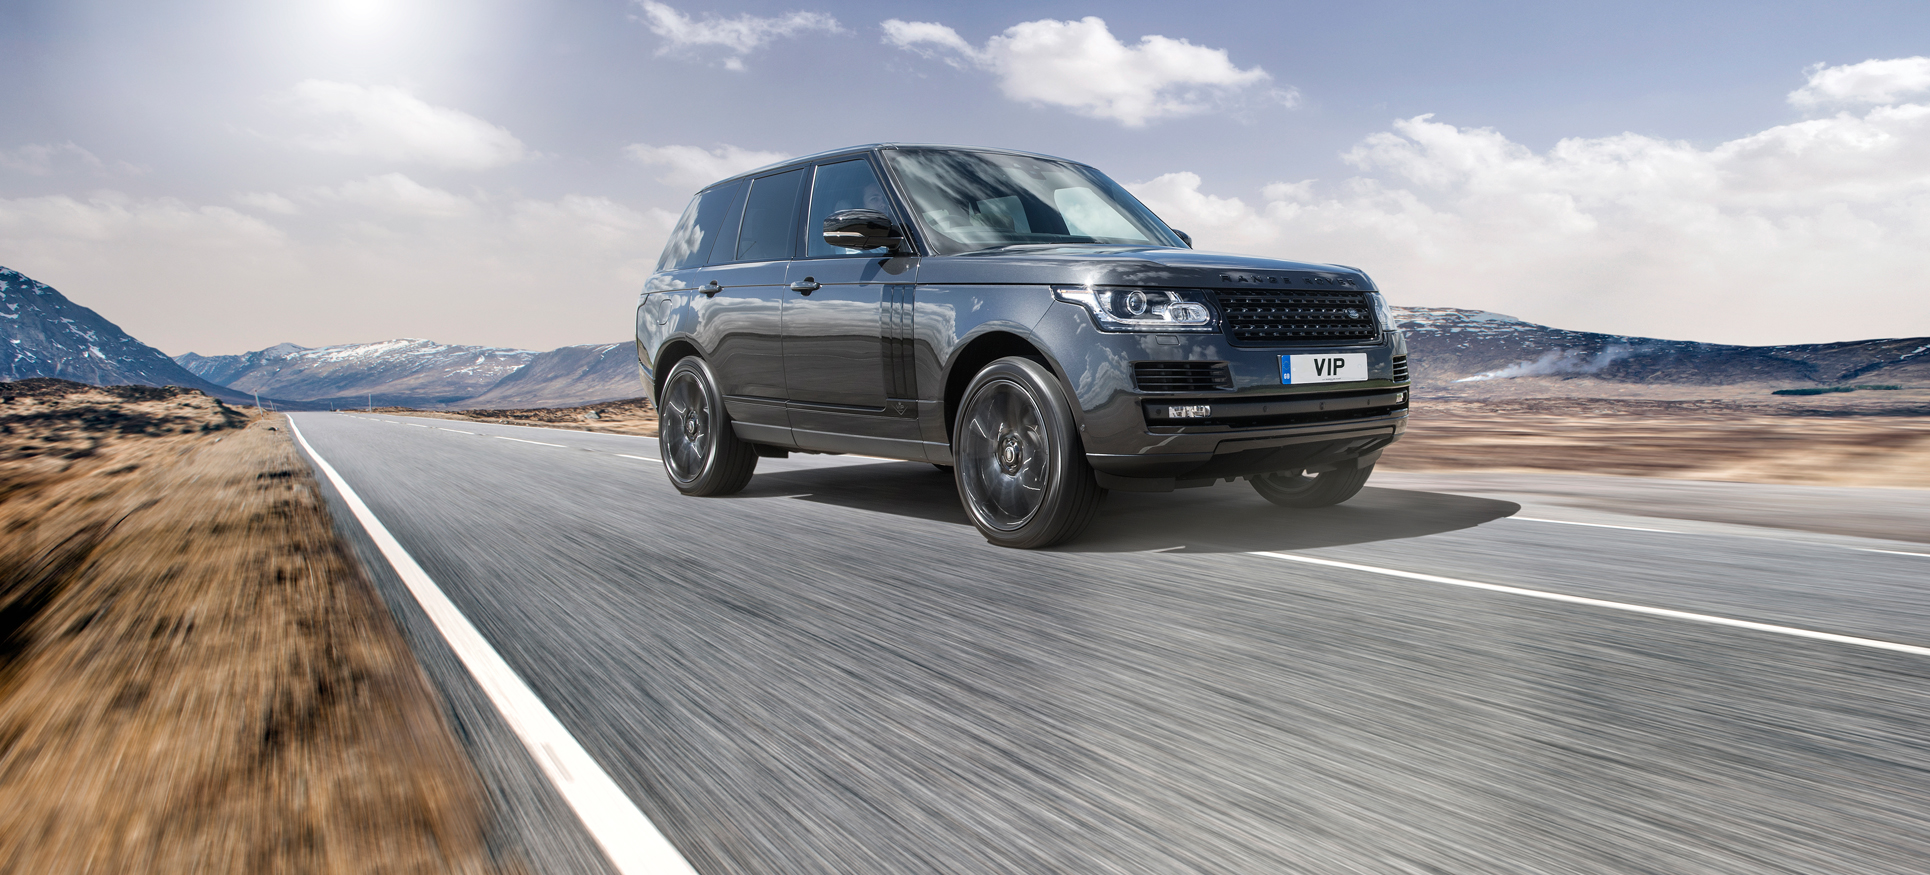 Range Rover 5 0 Tuning Session – VIP Range Rover engine software remap